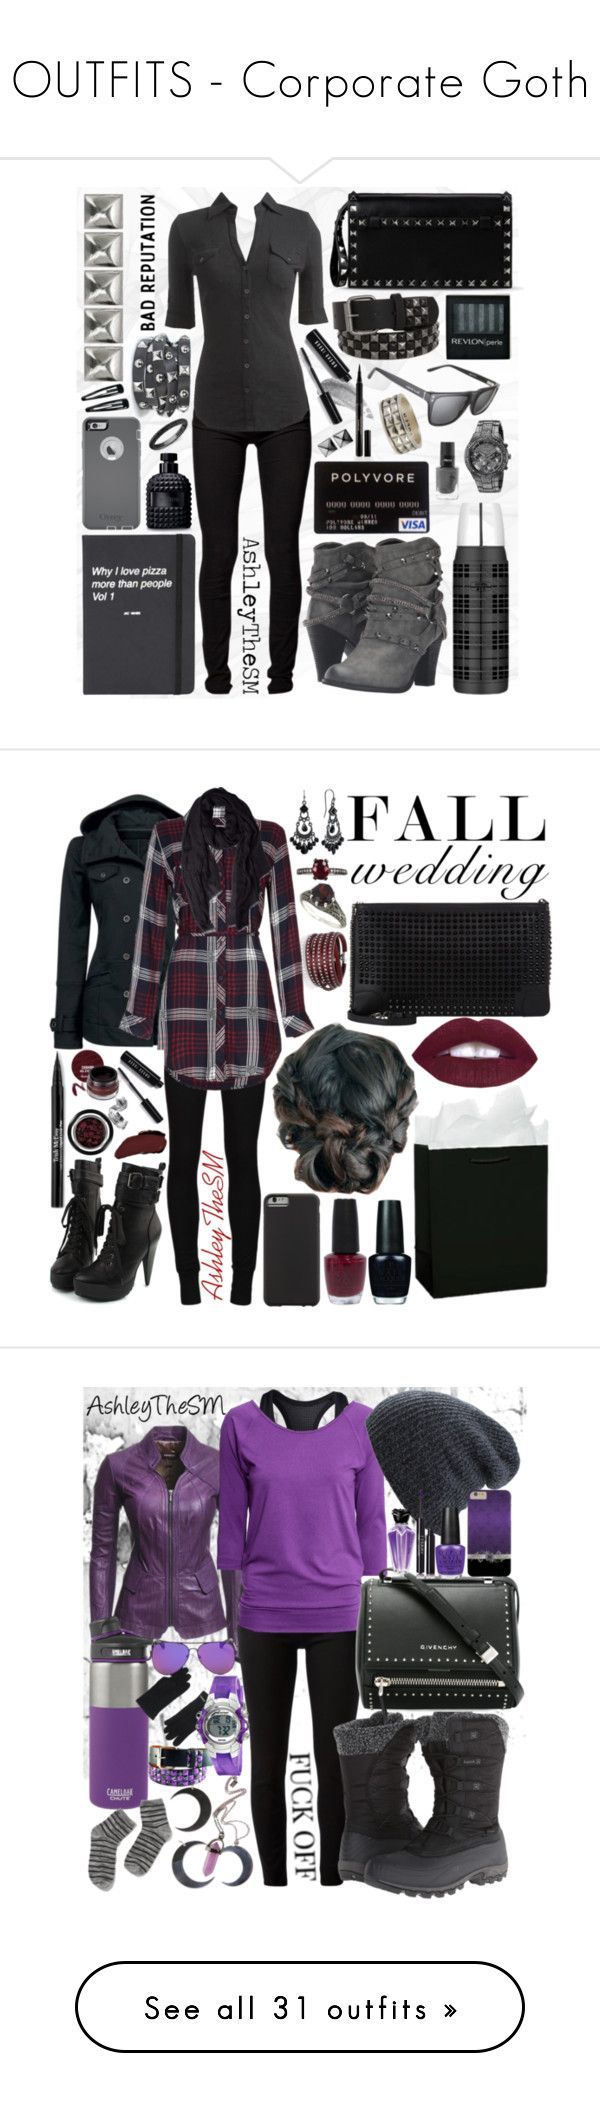 """OUTFITS - Corporate Goth"" by ashleythesm on Polyvore featuring Levi's, Bobbi Brown Cosmetics, Valentino, Arden B., Not Rated, Derek Cardigan, Elizabeth Arden, OtterBox, Revlon and GUESS"